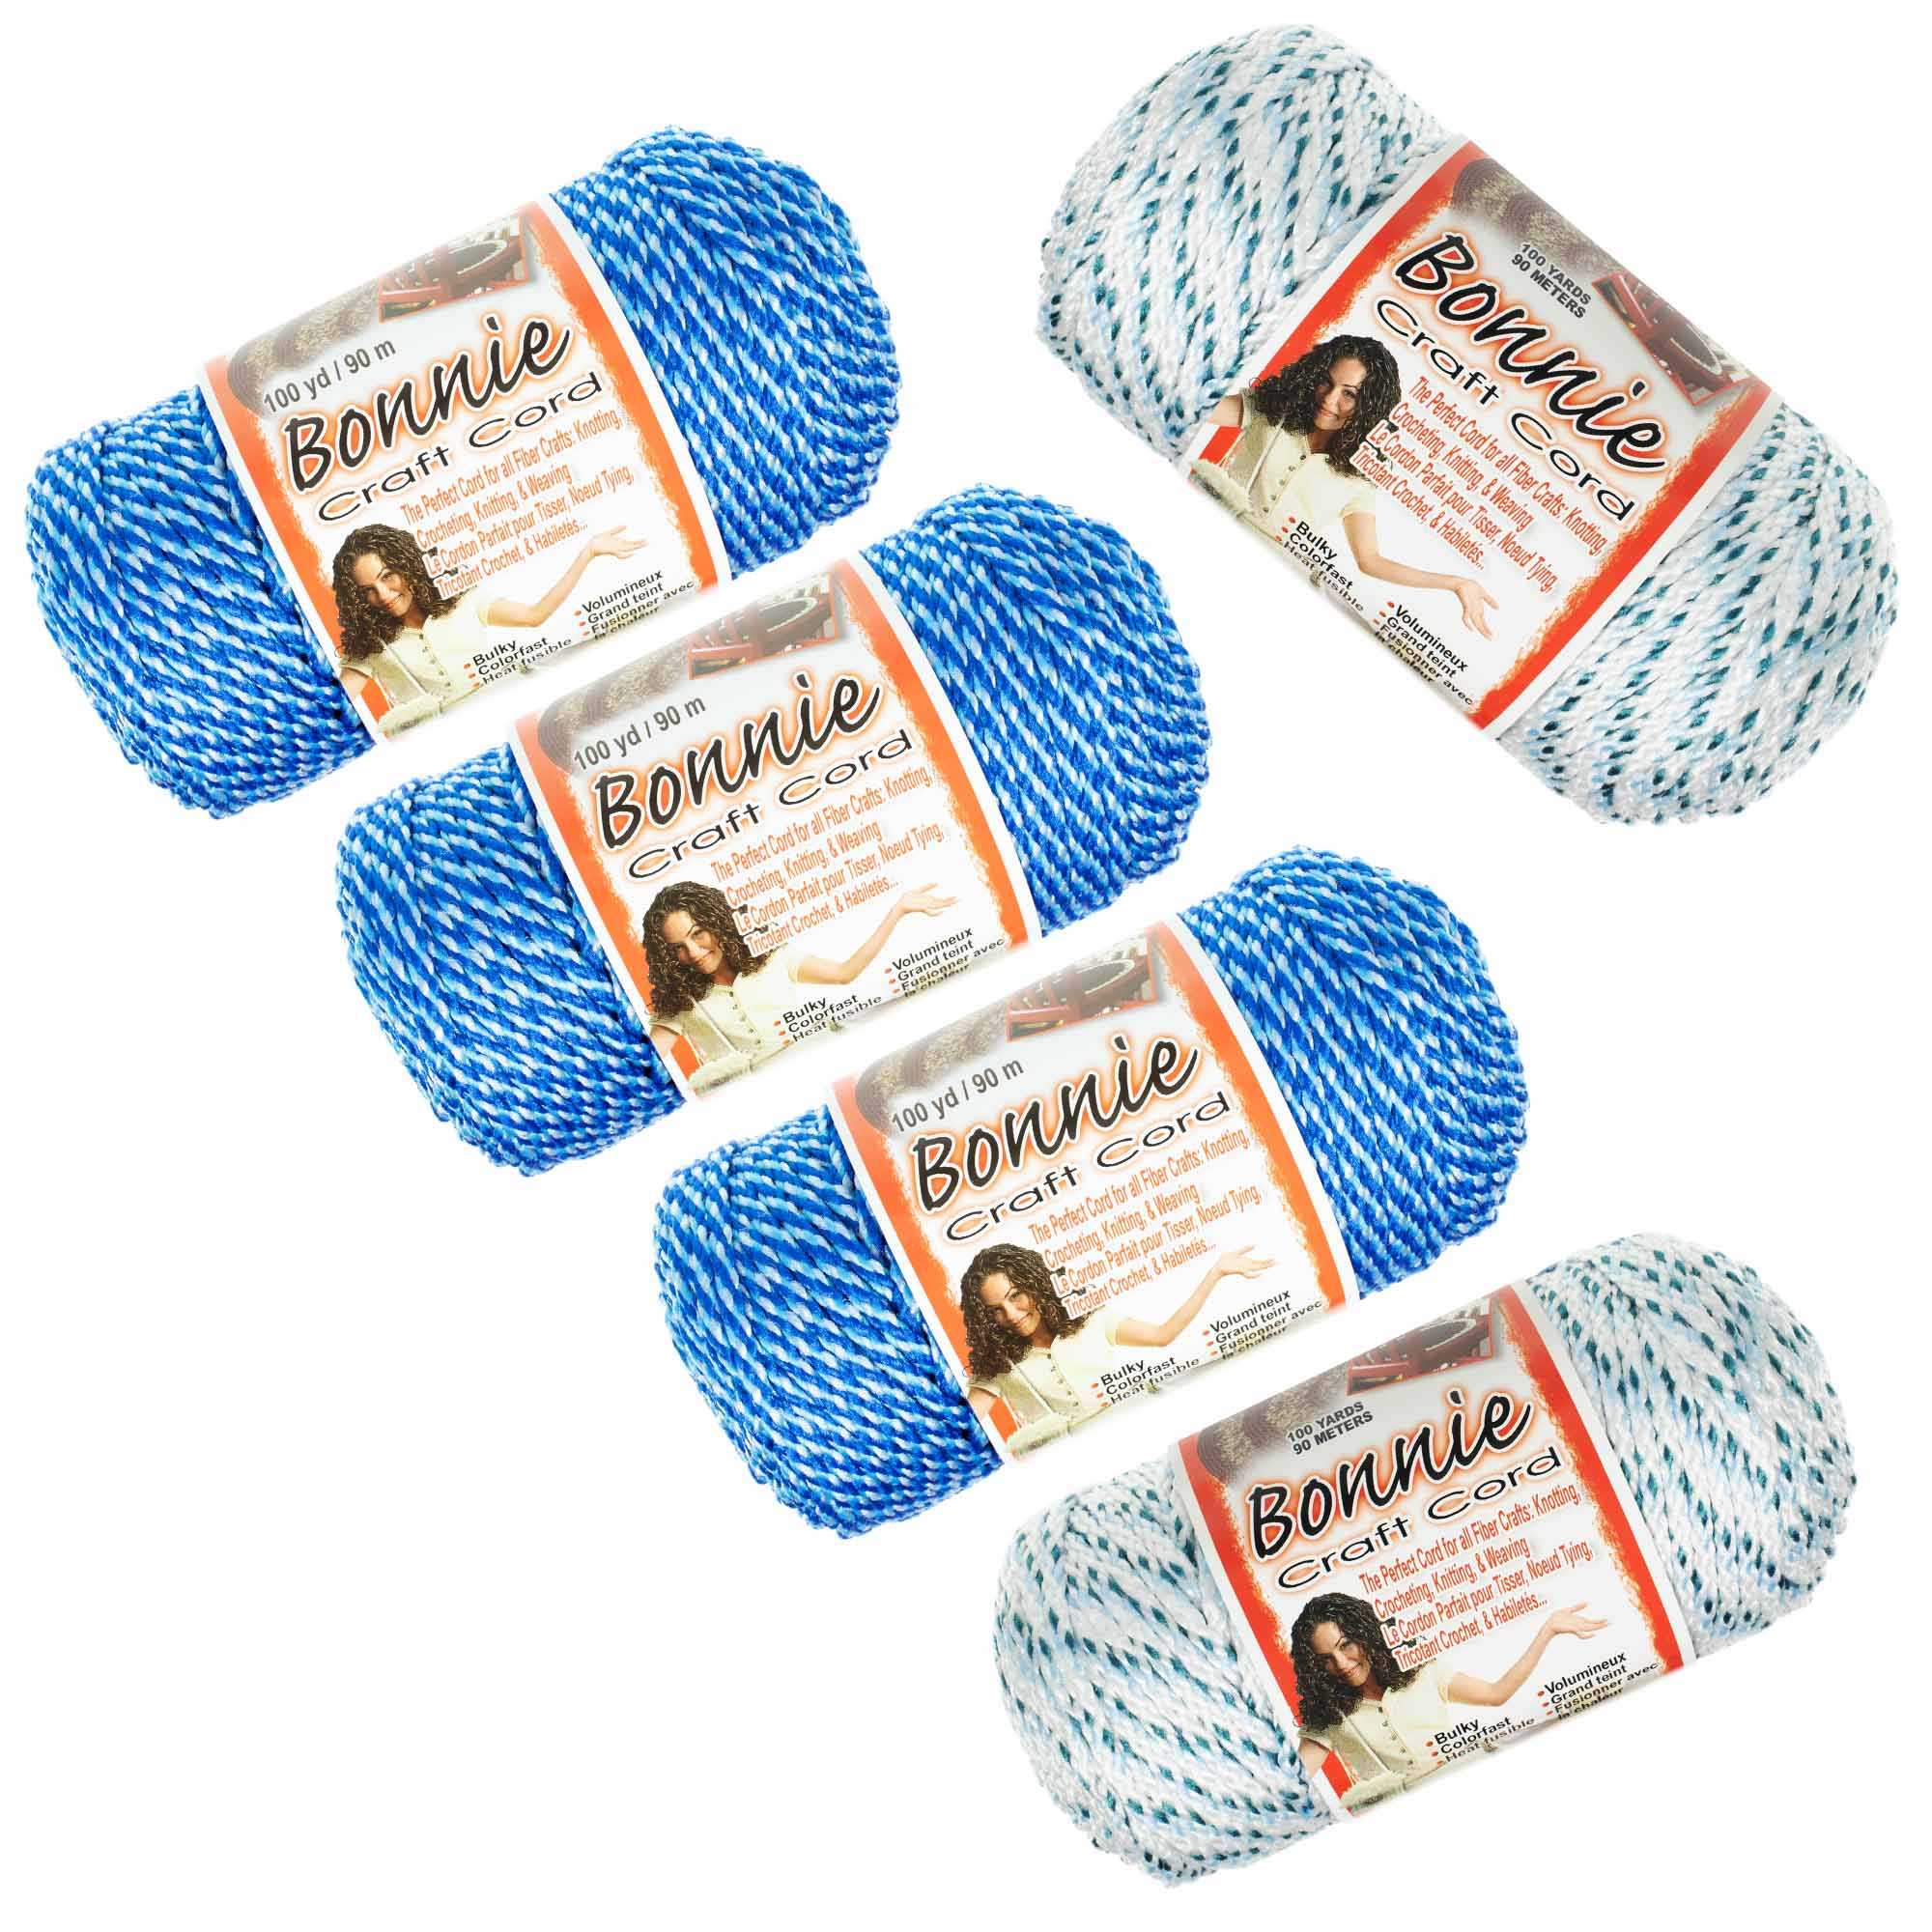 Craft County - Bonnie Macrame Cord - 4mm or 6mm - 5 Pack - 100 Yard Length - Variety of Color Combinations